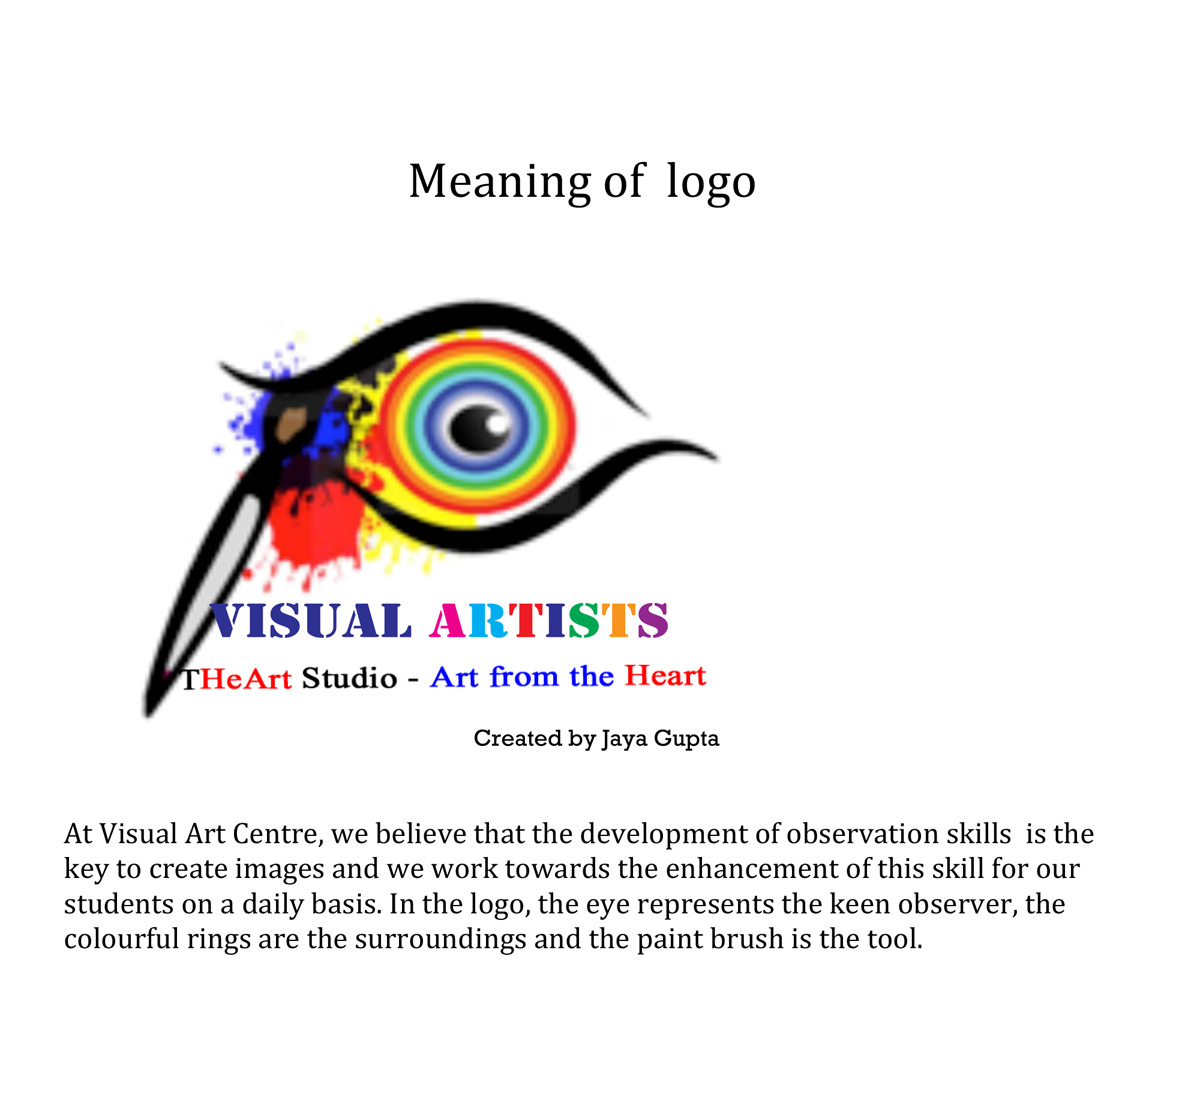 images?q=tbn:ANd9GcQh_l3eQ5xwiPy07kGEXjmjgmBKBRB7H2mRxCGhv1tFWg5c_mWT The Visual Arts Logo Site Guide @capturingmomentsphotography.net